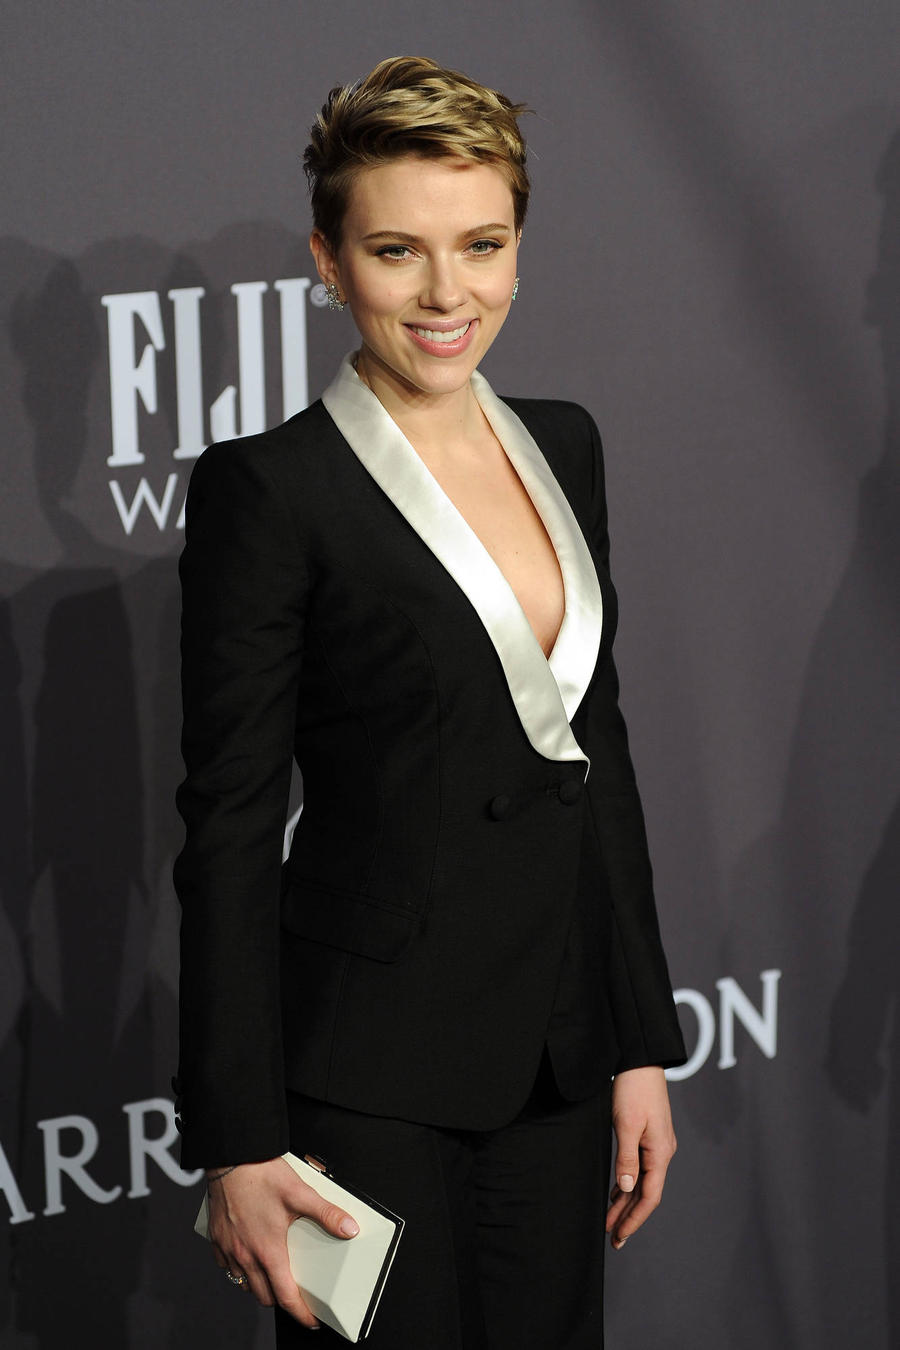 Scarlett Johansson: 'I'm Barely Holding It Together As A Working Mother'